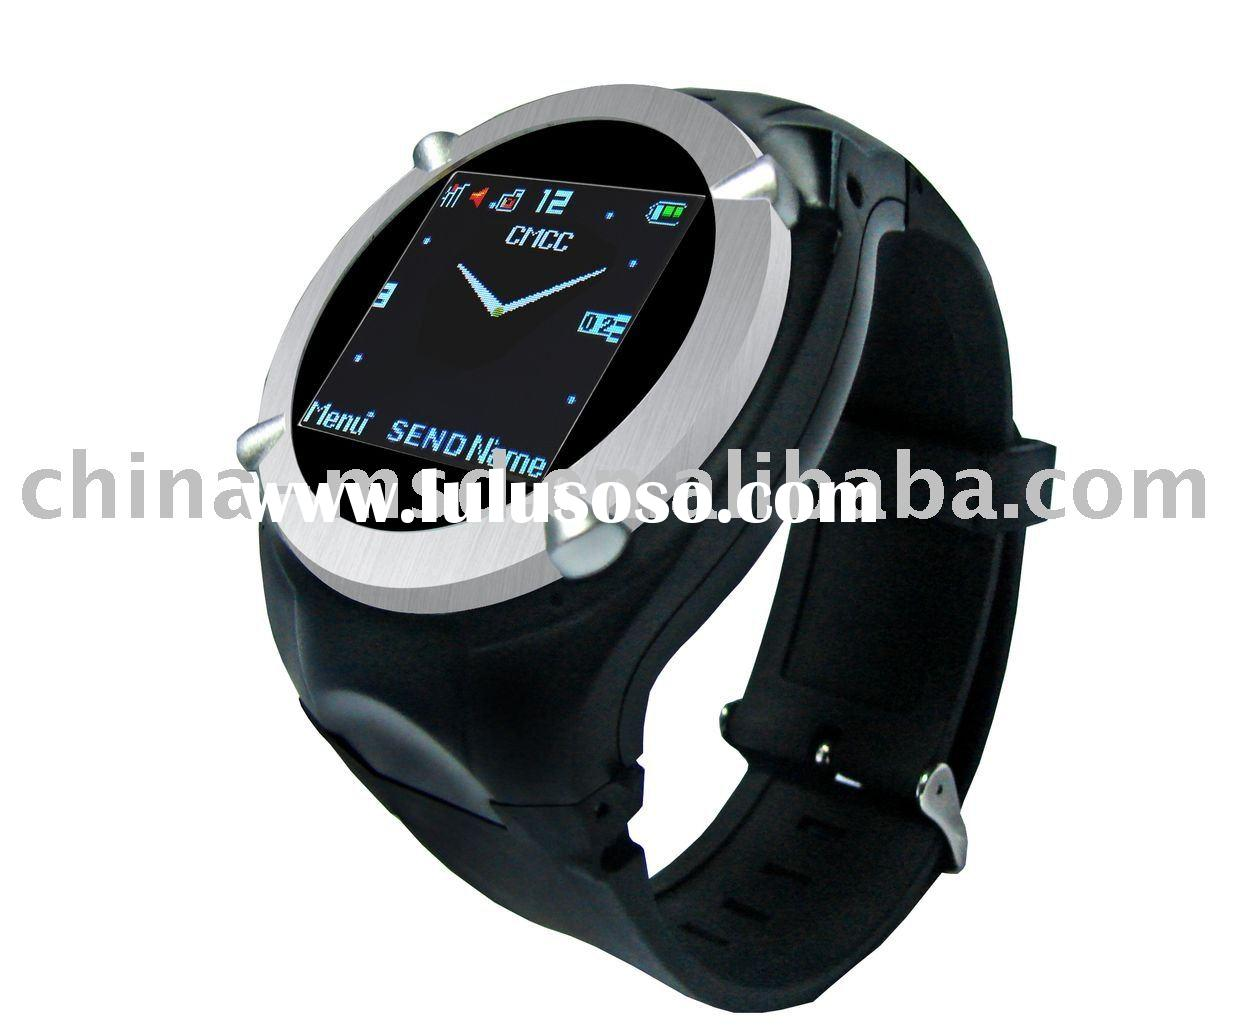 2011 latest cool mq006 wrist watch mobile phone for sale with CE certificate